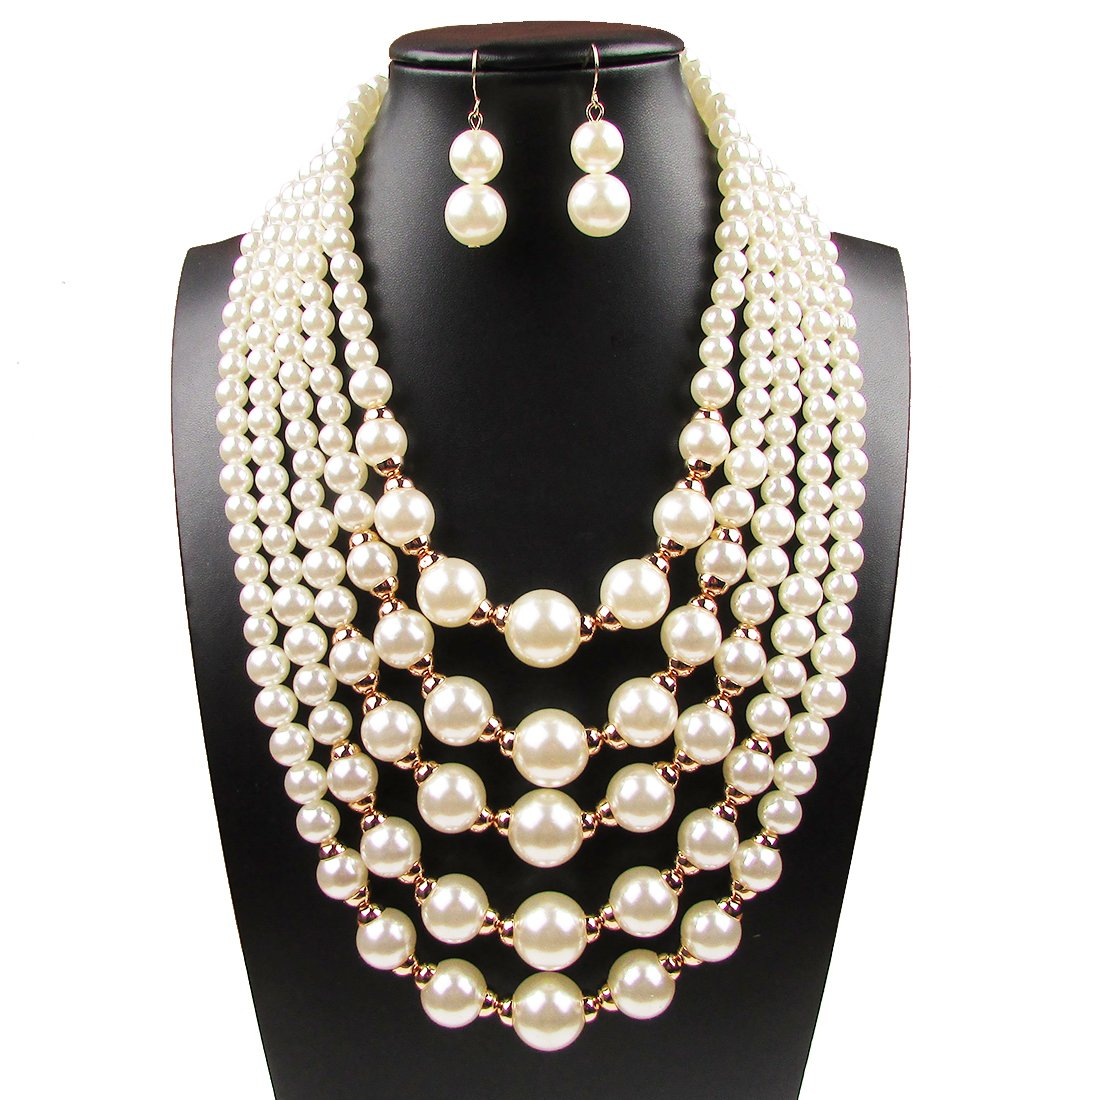 Yuhuan Women Elegant Jewelry Set White Pearl Bead Cluster Collar Bib Choker Necklace and Earrings Suit DIS N3110